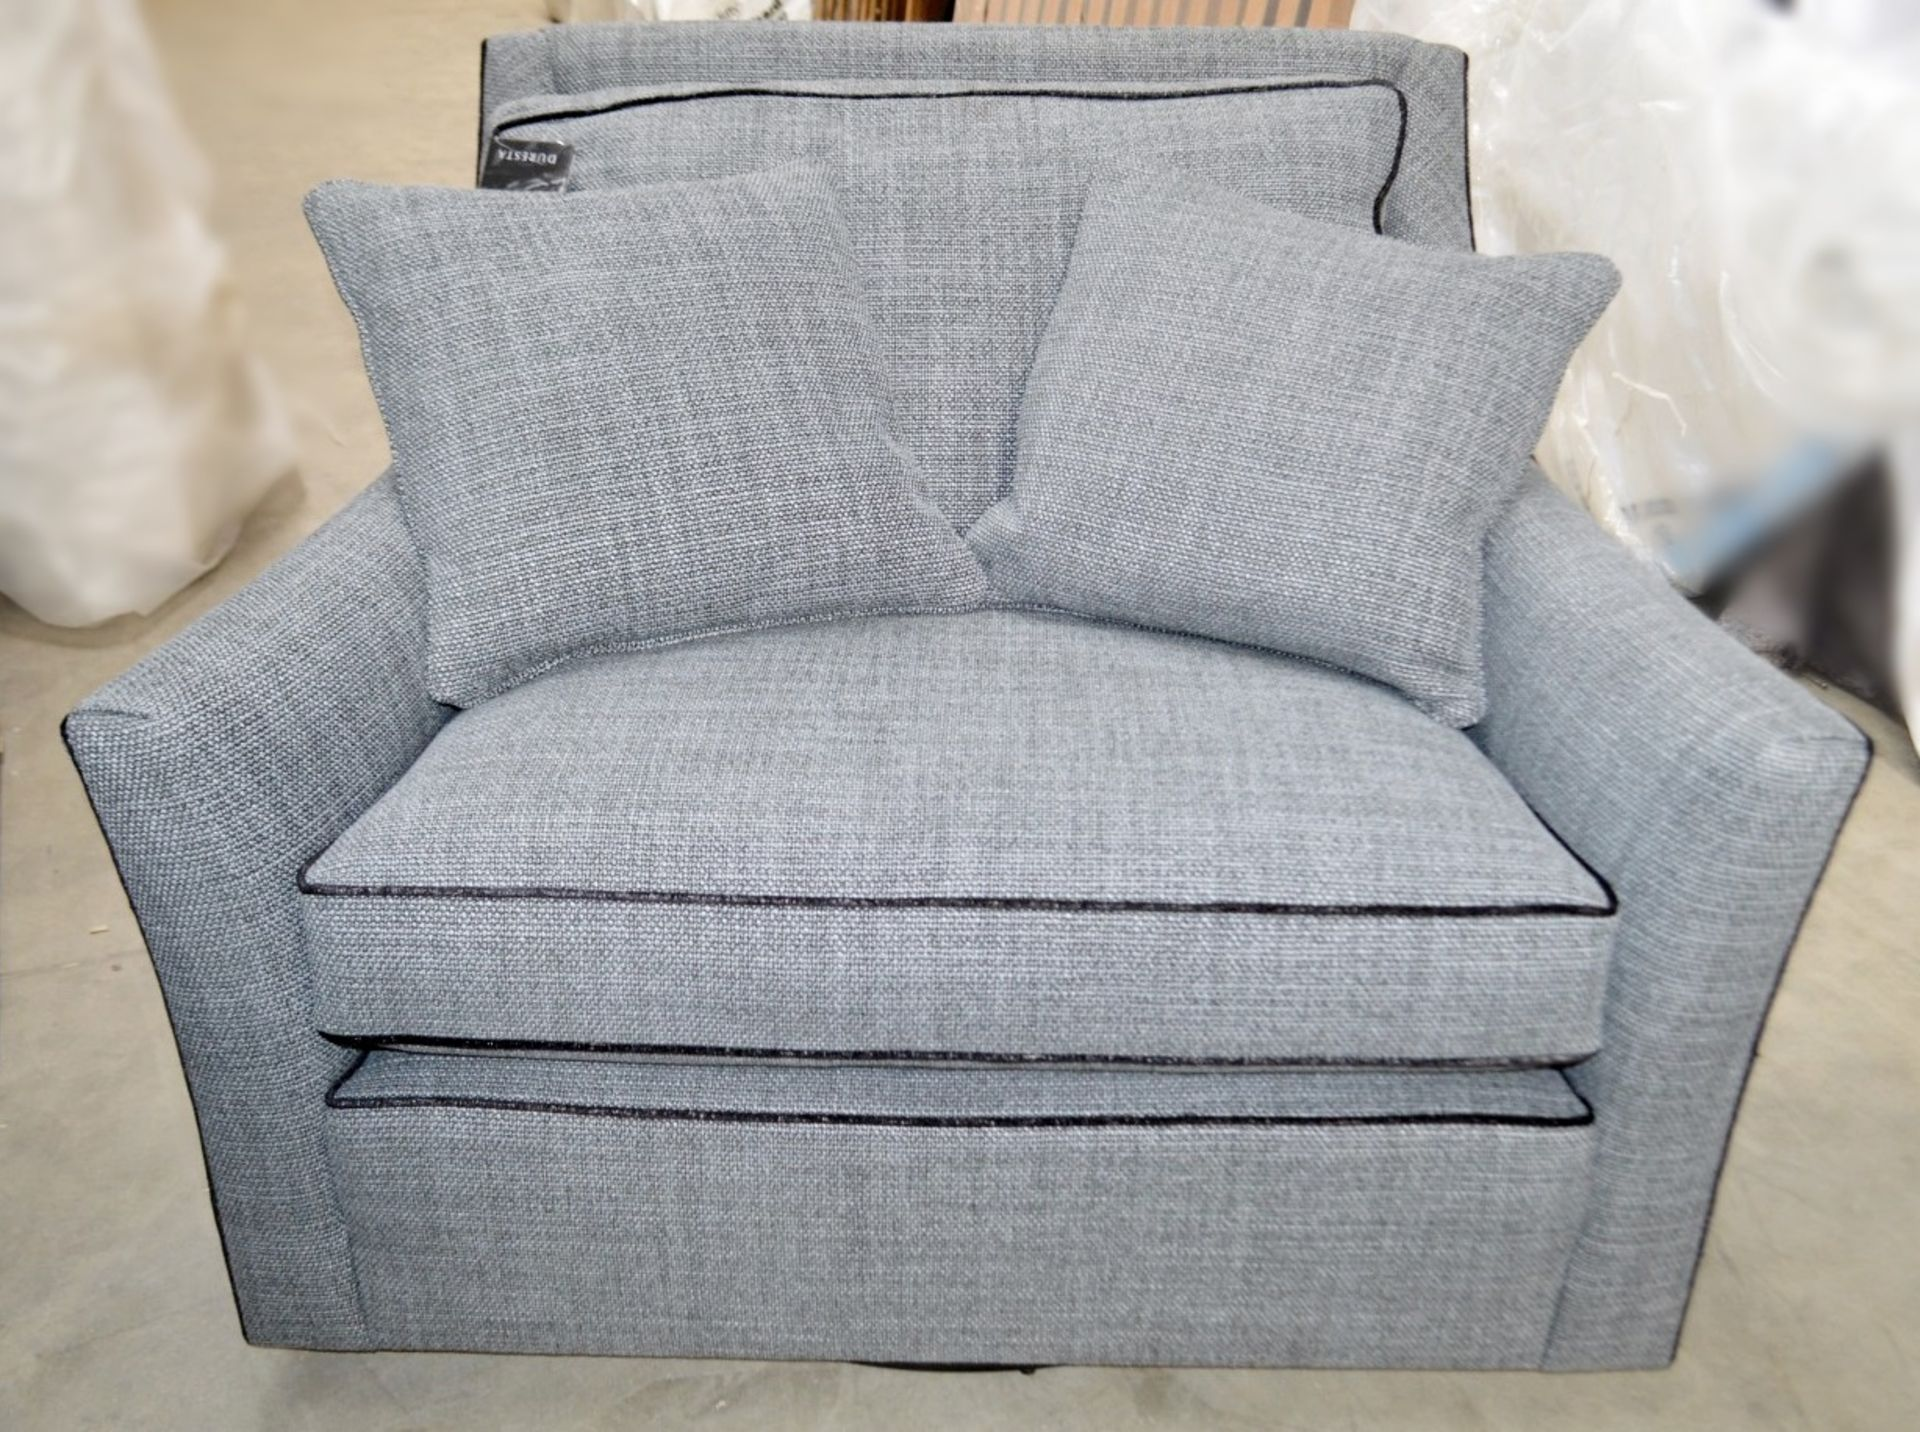 1 x DURESTA Hermitage Swivel Chair Upholstered In A Light Grey Premium Woven Fabric - RRP £3,729 - Image 2 of 7